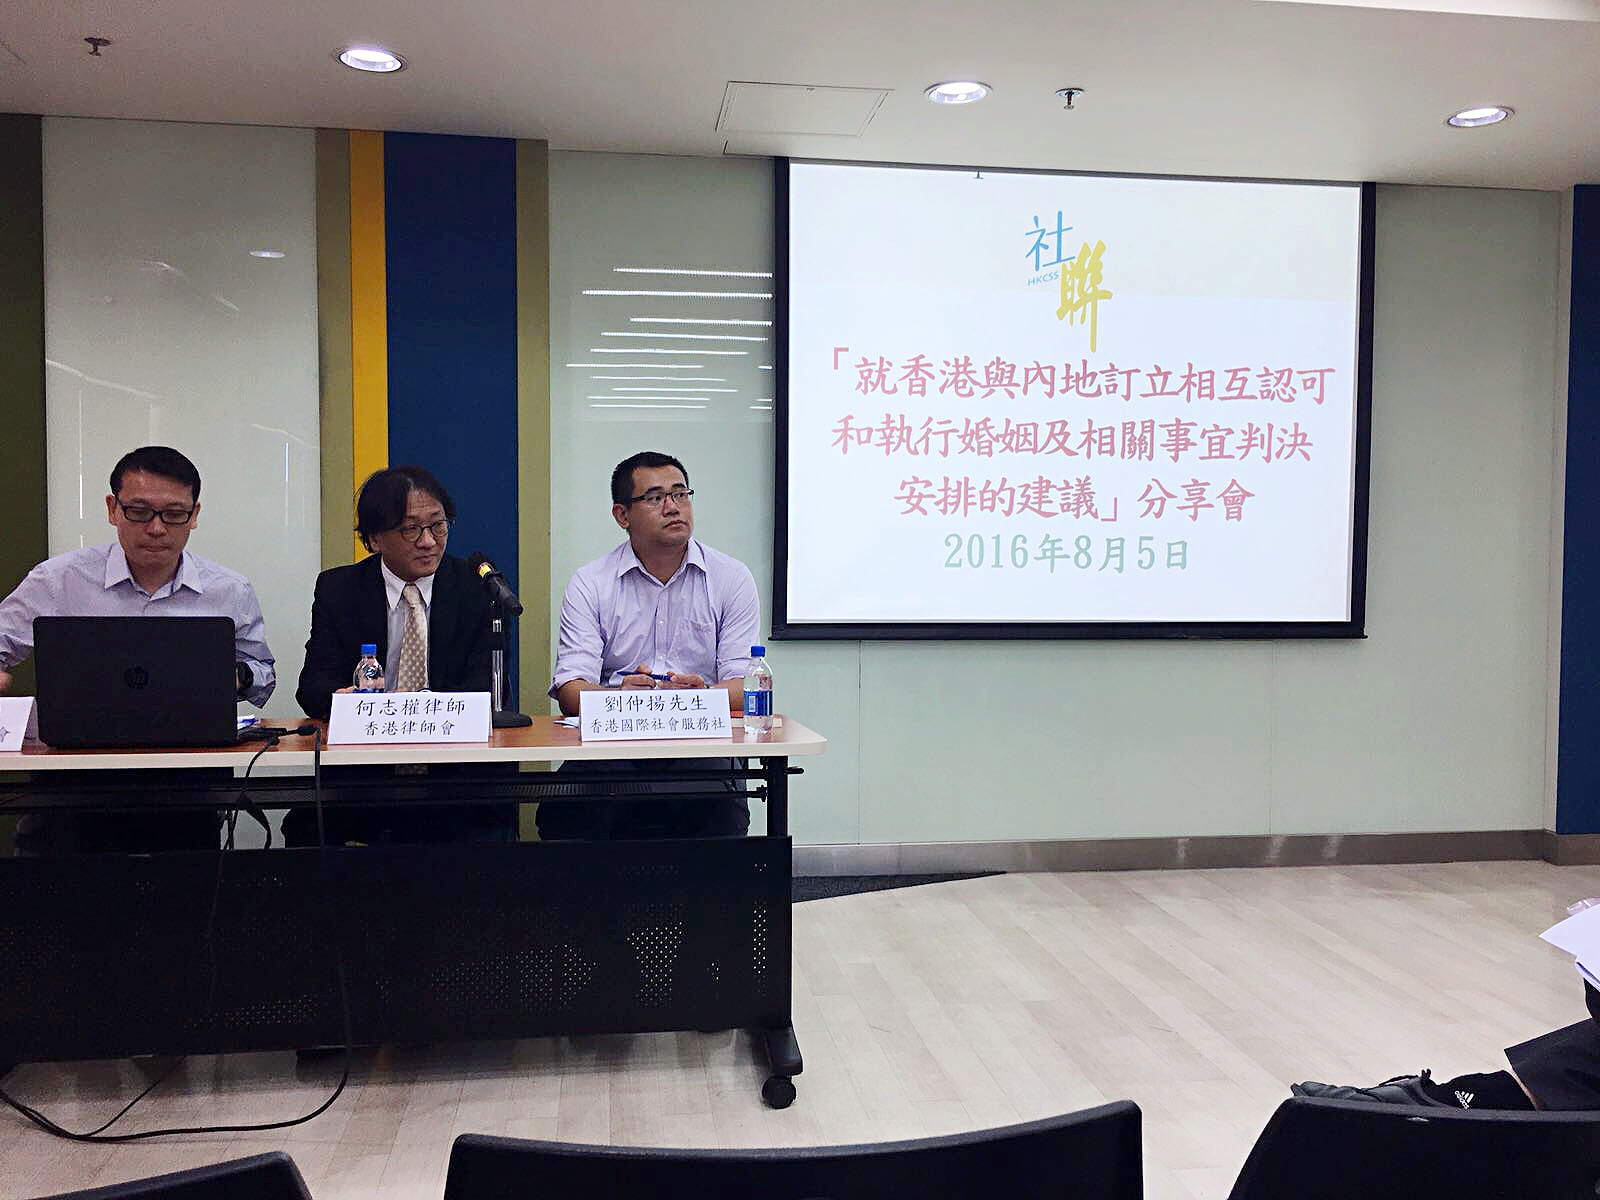 Consultation Meeting on Reciprocal Recognition and Enforcement of Judgments between HK and Mainland